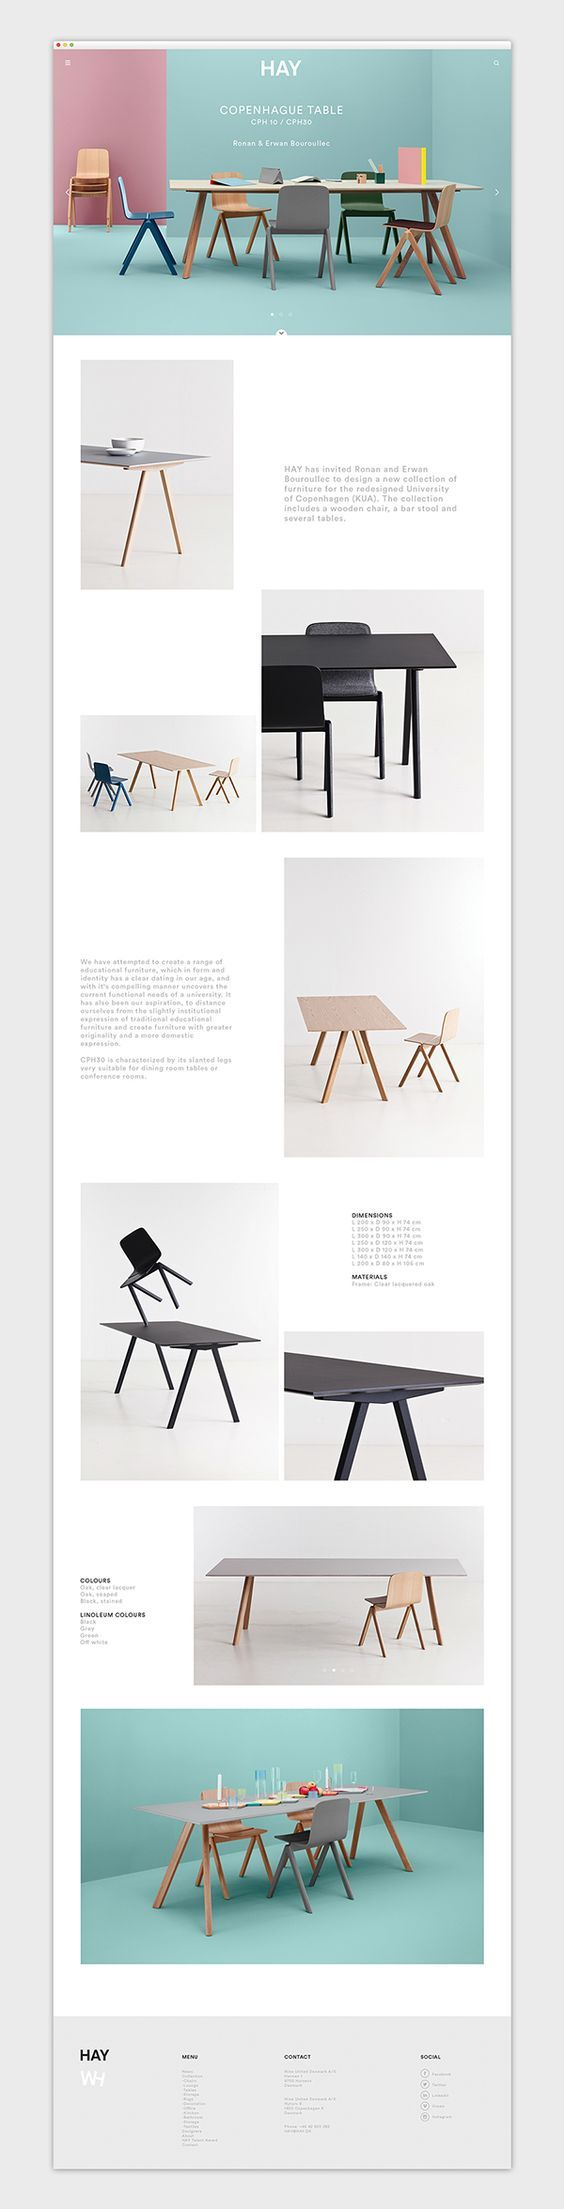 MODERNISM TRENDS - With most modern designs the layout is usually clean, concise and minimal. Keeping straight to the point and easy to understand and follow. As shown in this design the objects are the overall focus and the information is secondary. This is because communicating through visuals works and gains the viewers attention.: